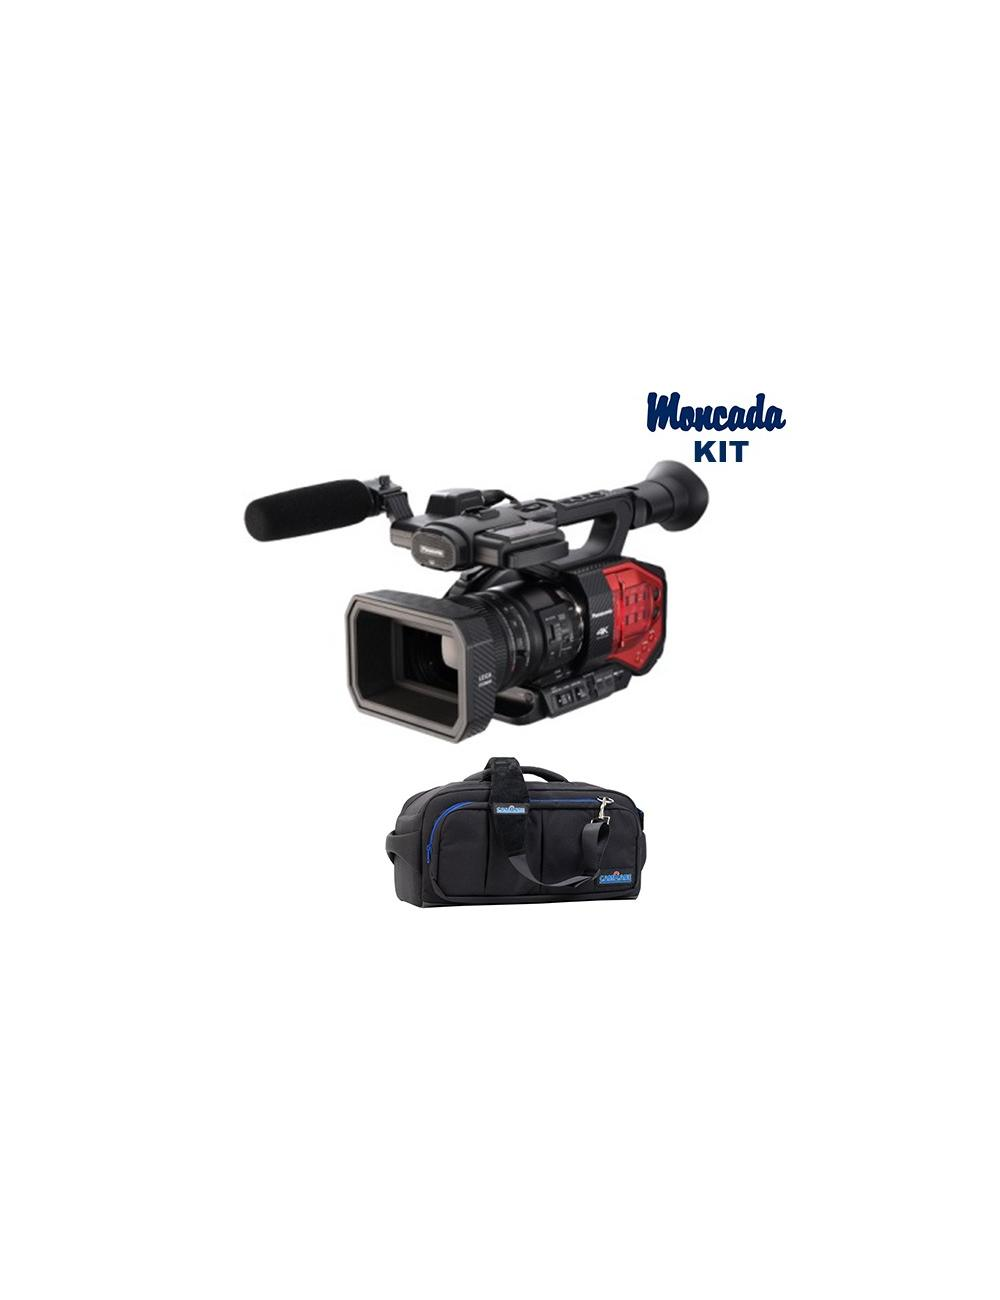 Panasonic AG-DVX200 EJ + camrade run&gunBag Medium Kit